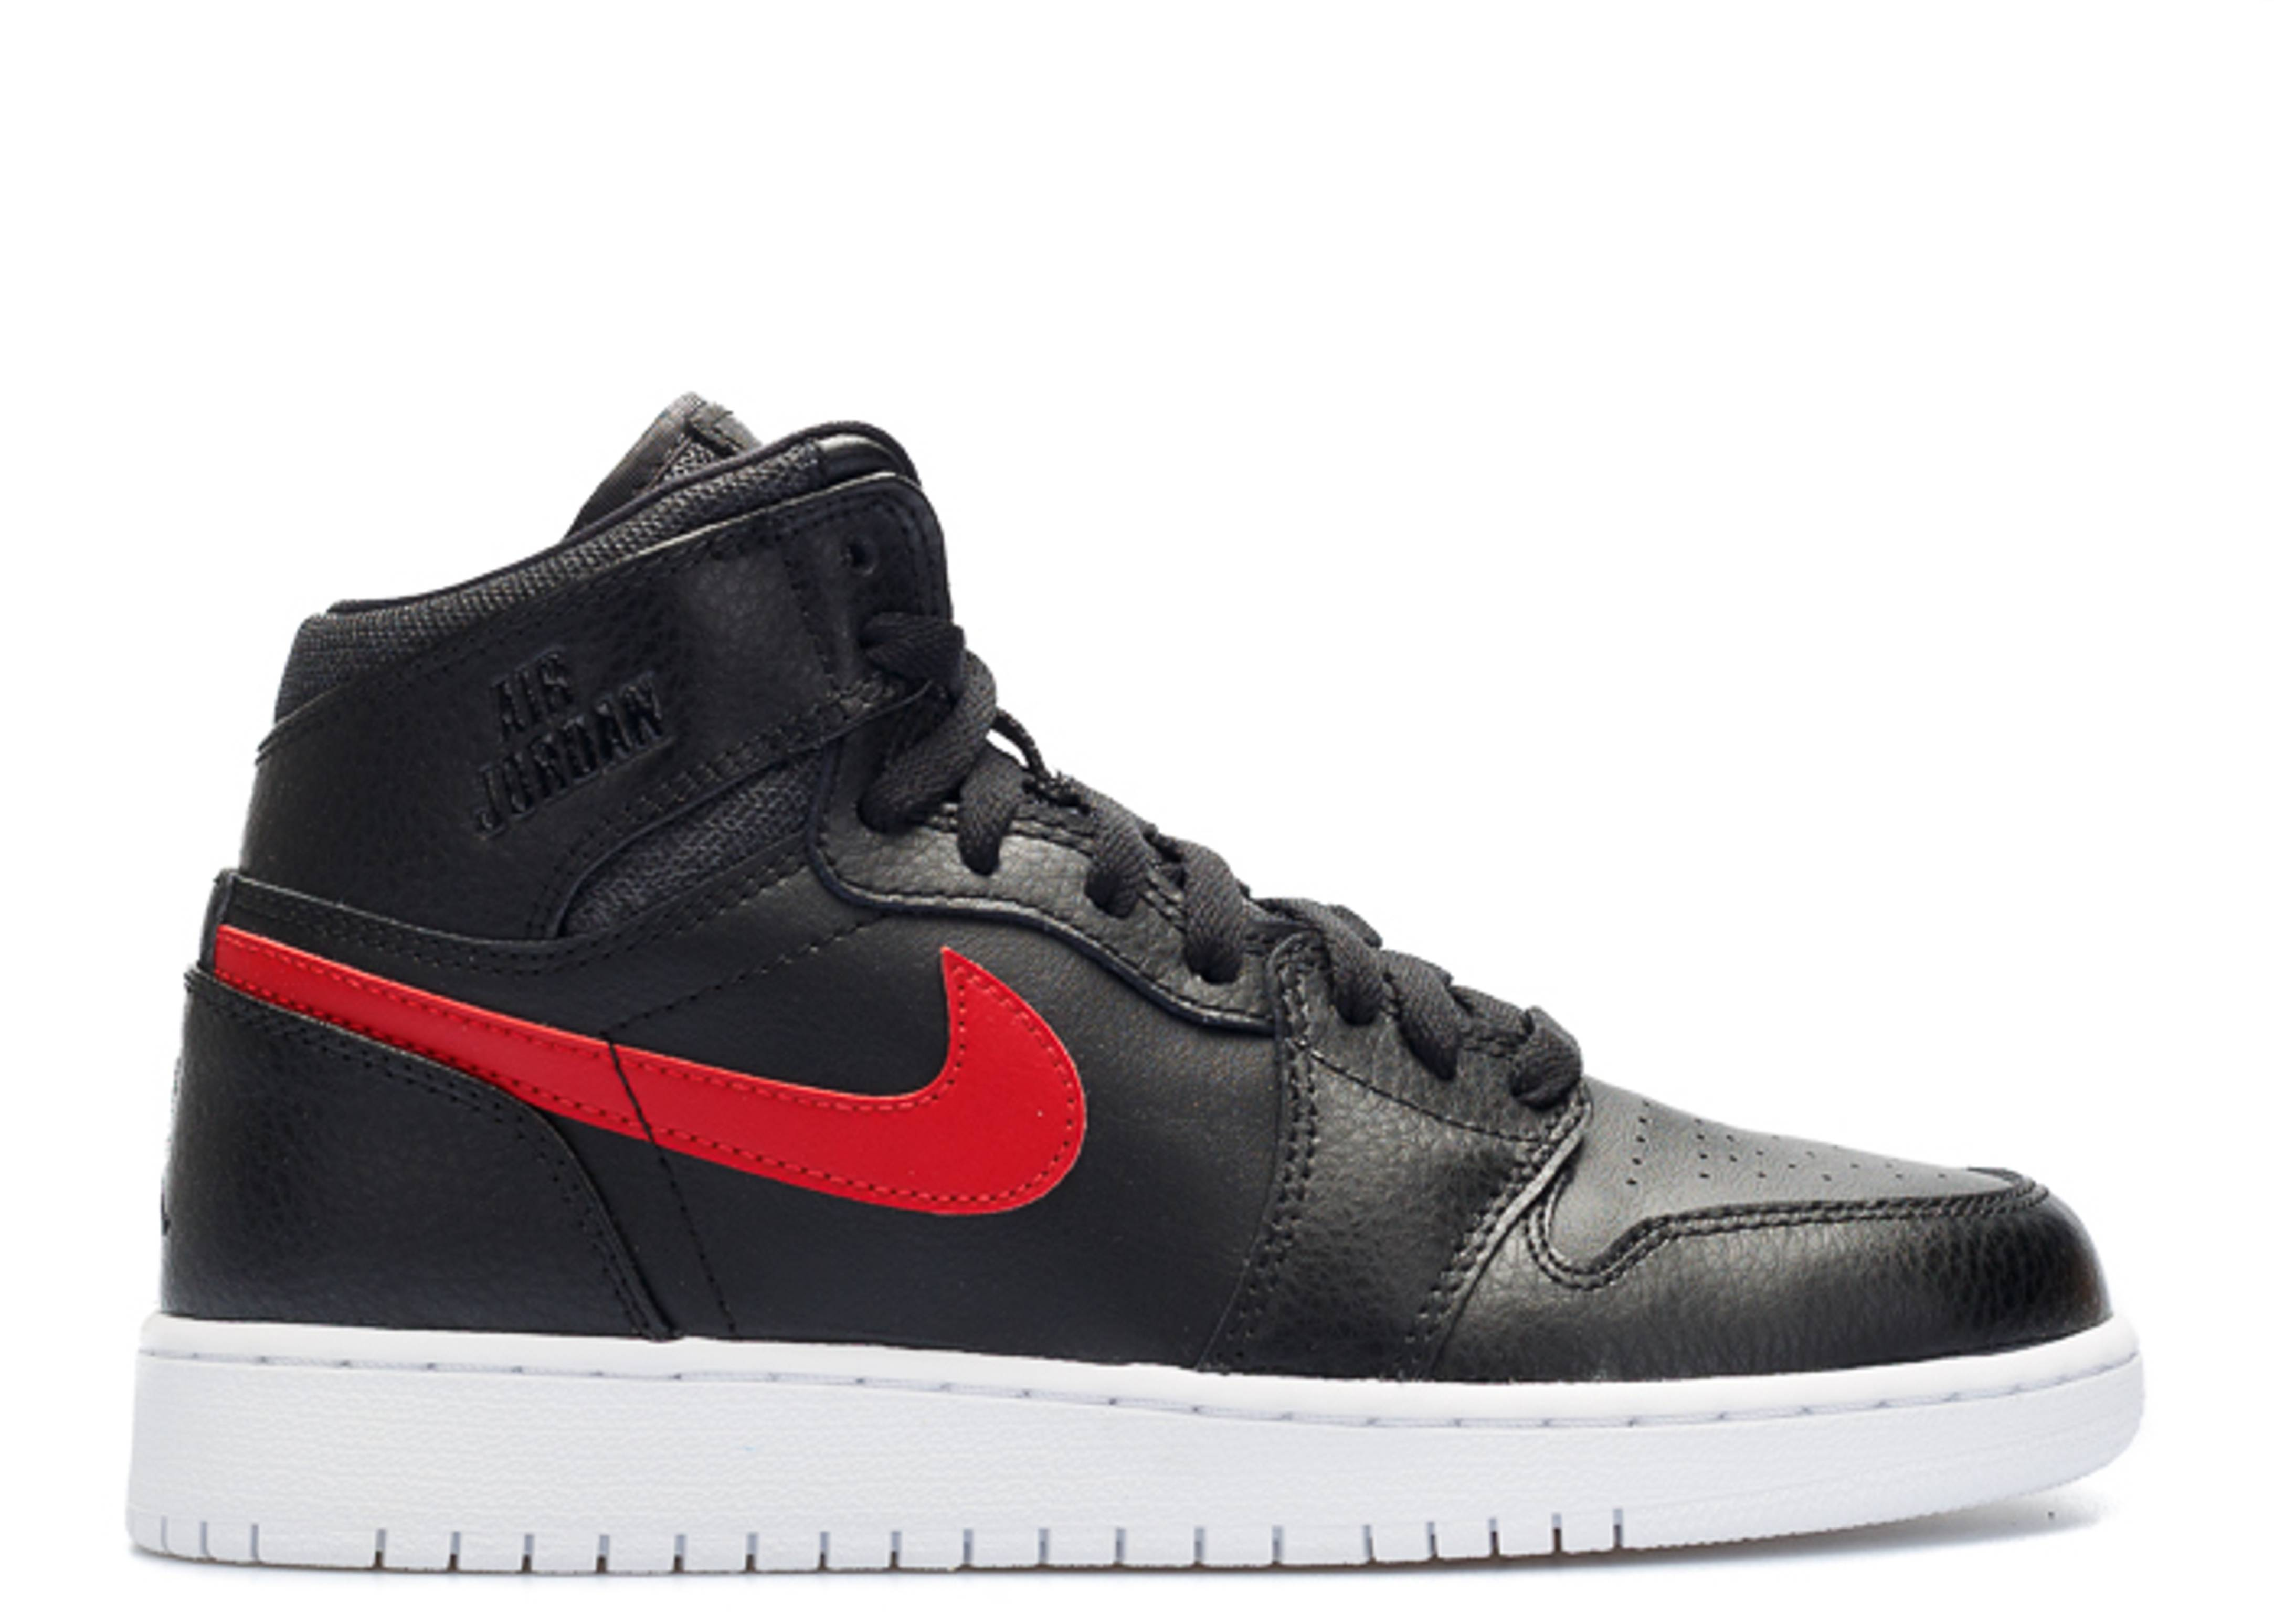 d893421fe997 1 Retro High Bg - Air Jordan - 705300 012 - black gym red-black ...